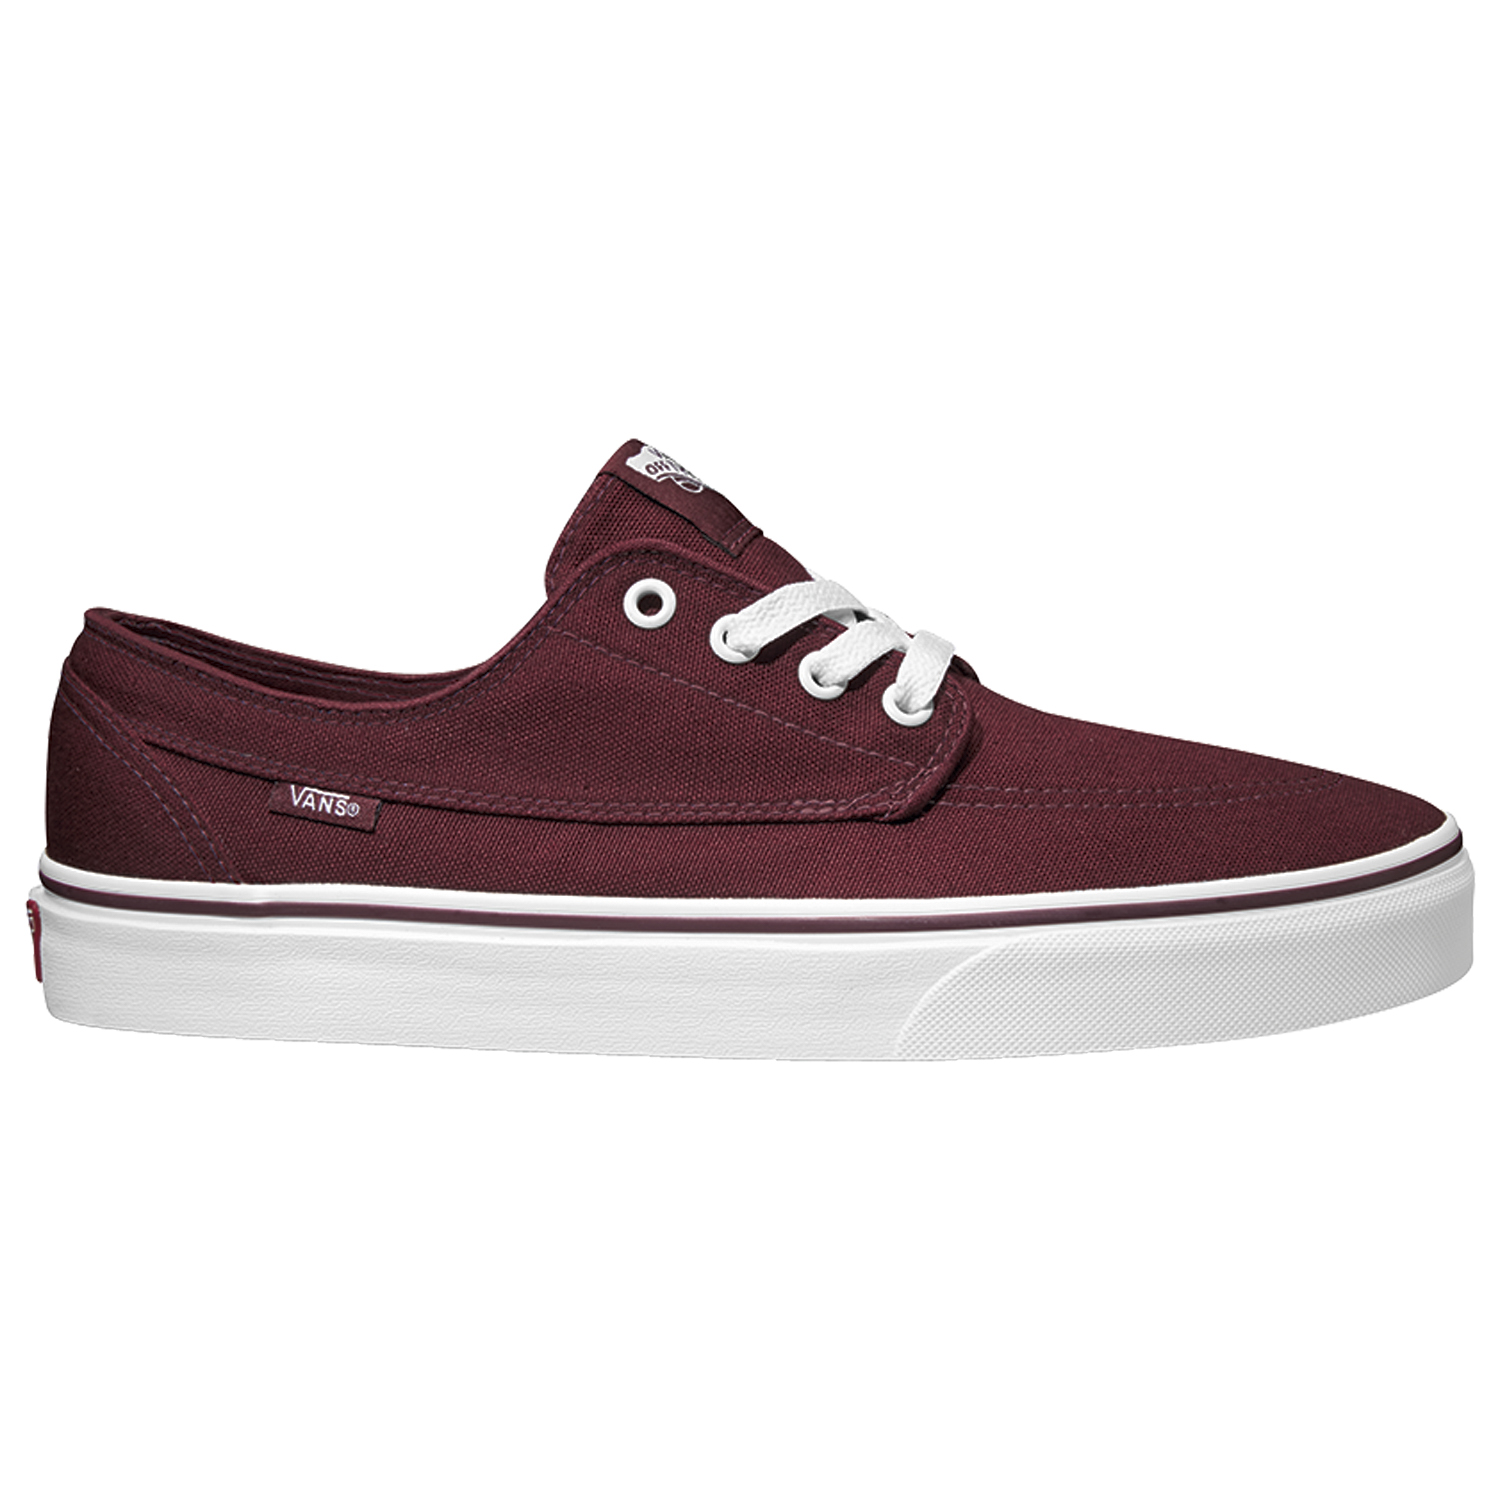 vans-brigata-port-royale-true-white-99-90